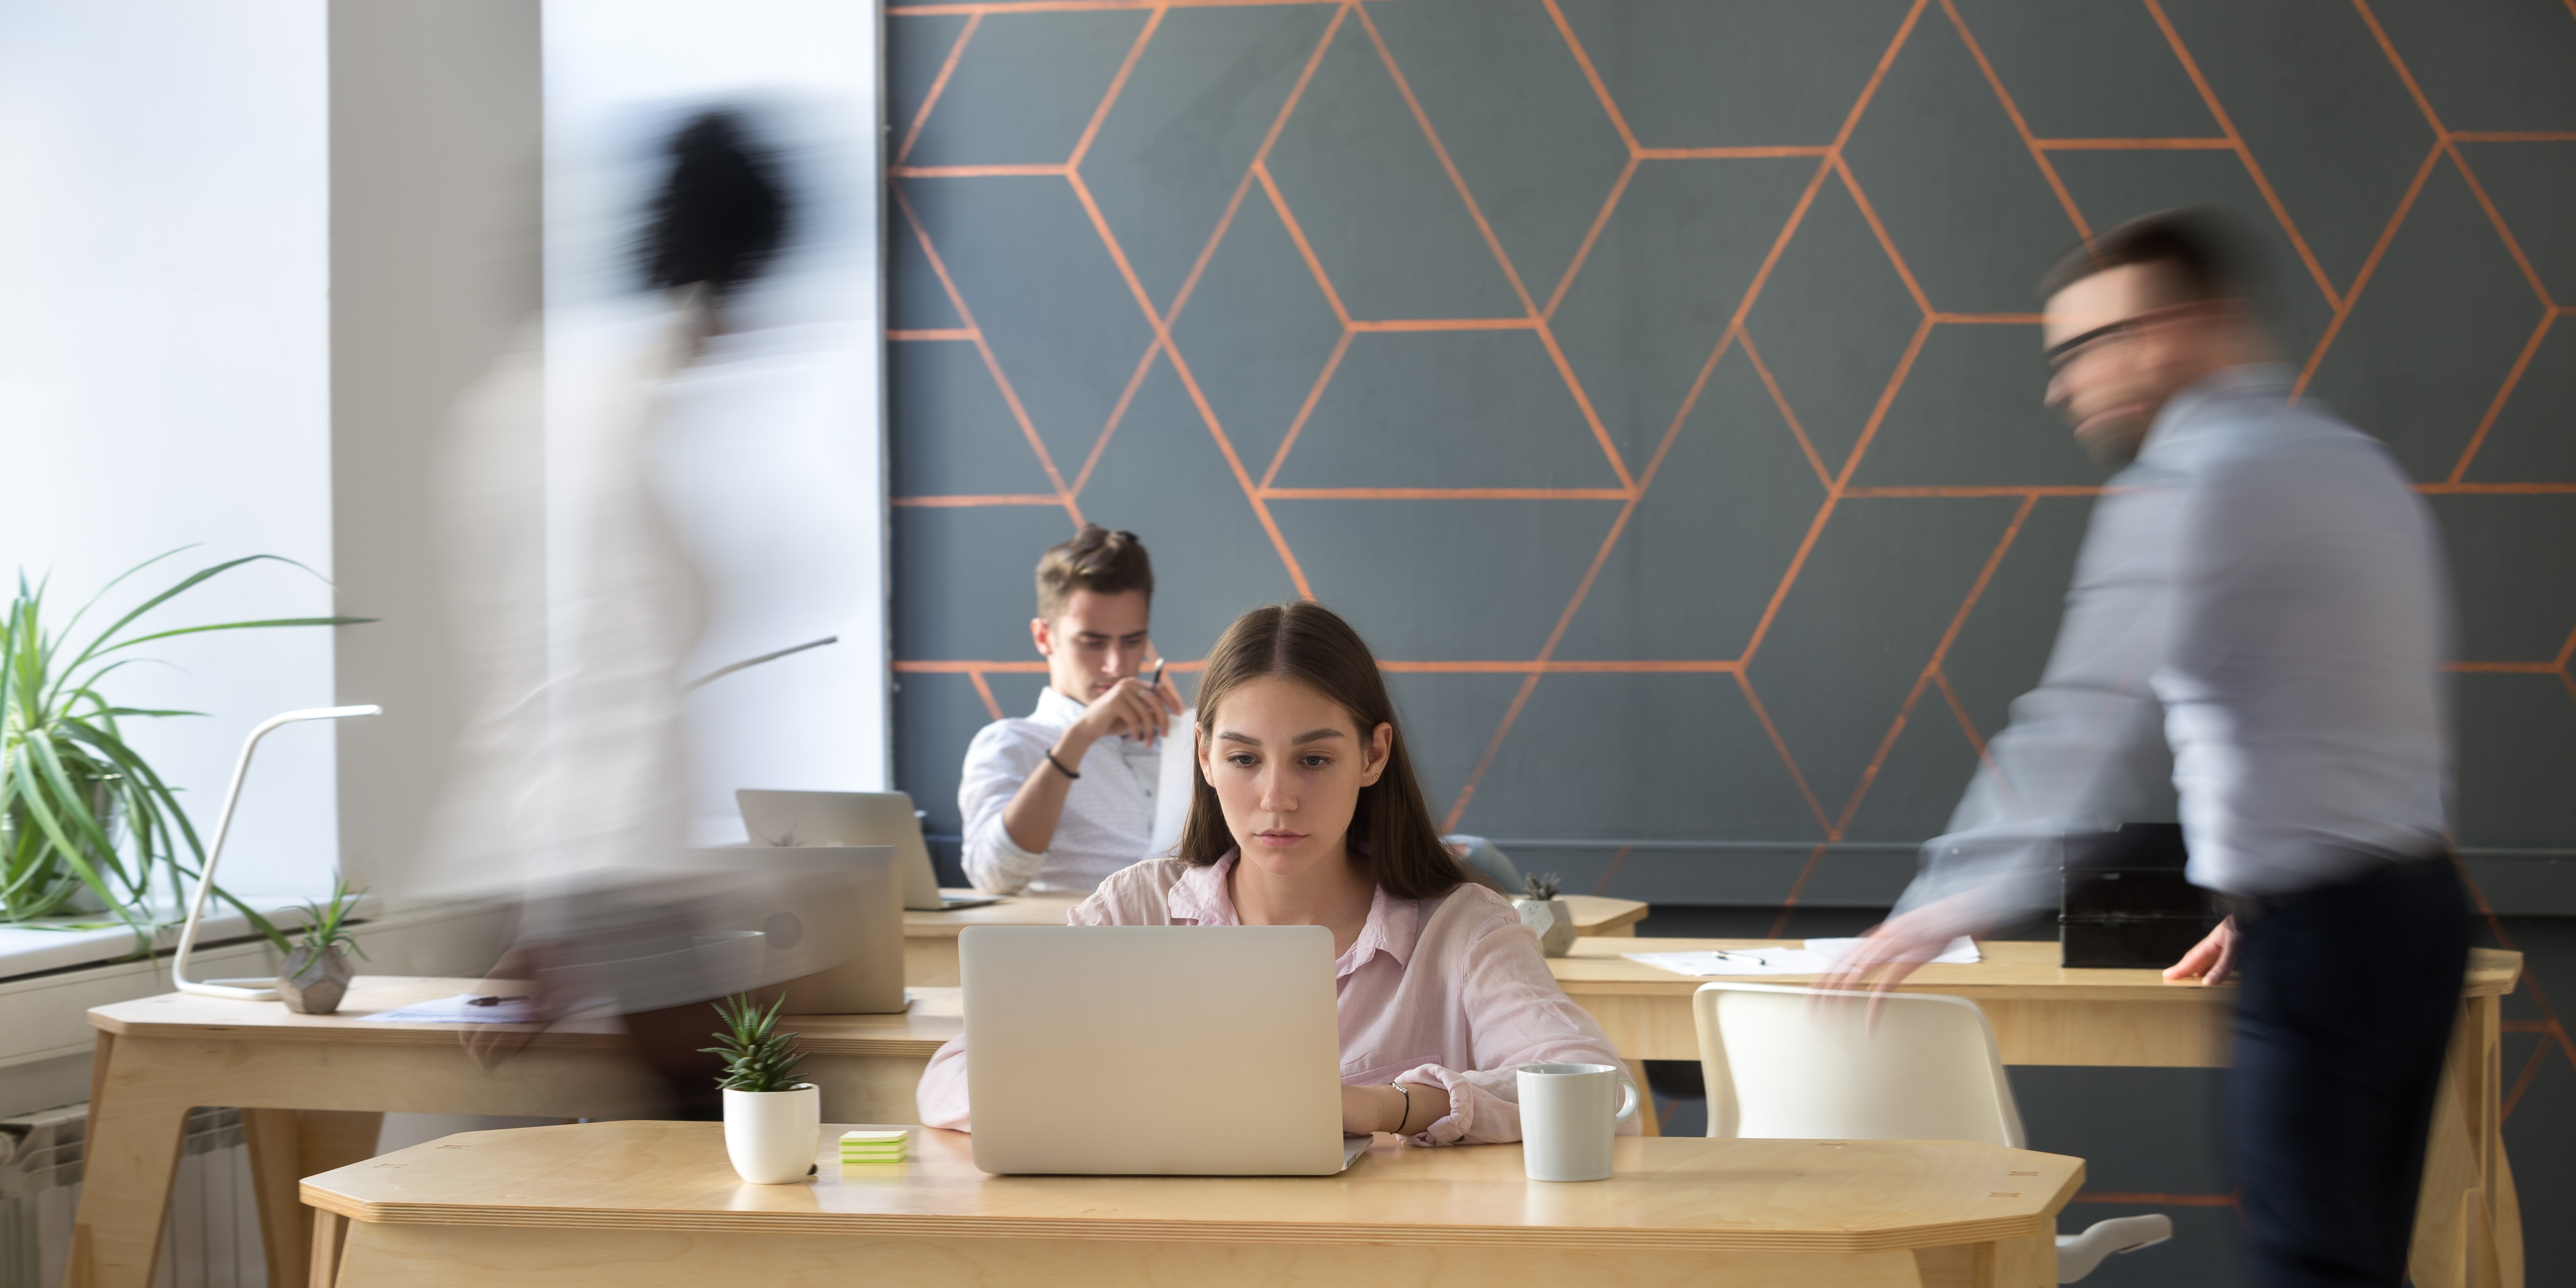 5 Techniques for Staying Focused at Work